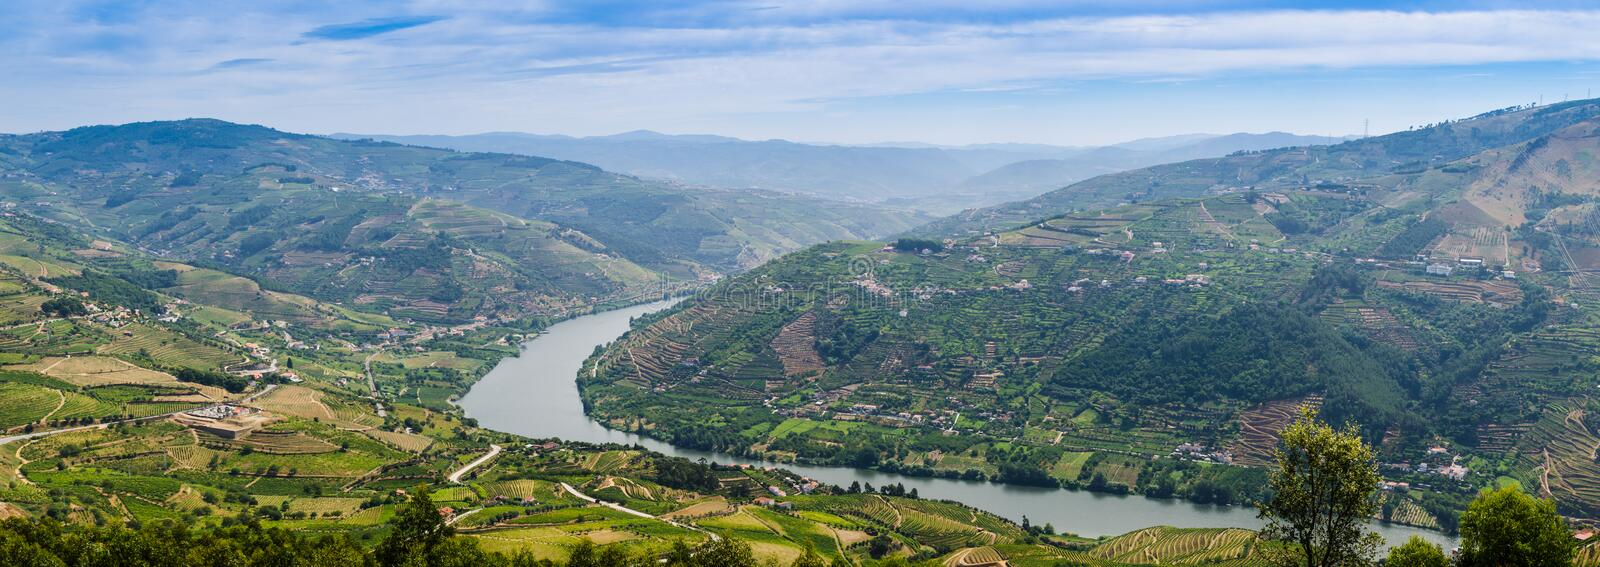 Vineyars in Douro Valley. Terraced vineyards in Douro Valley, Alto Douro Wine Region in northern Portugal, officially designated by UNESCO as World Heritage Site royalty free stock photos